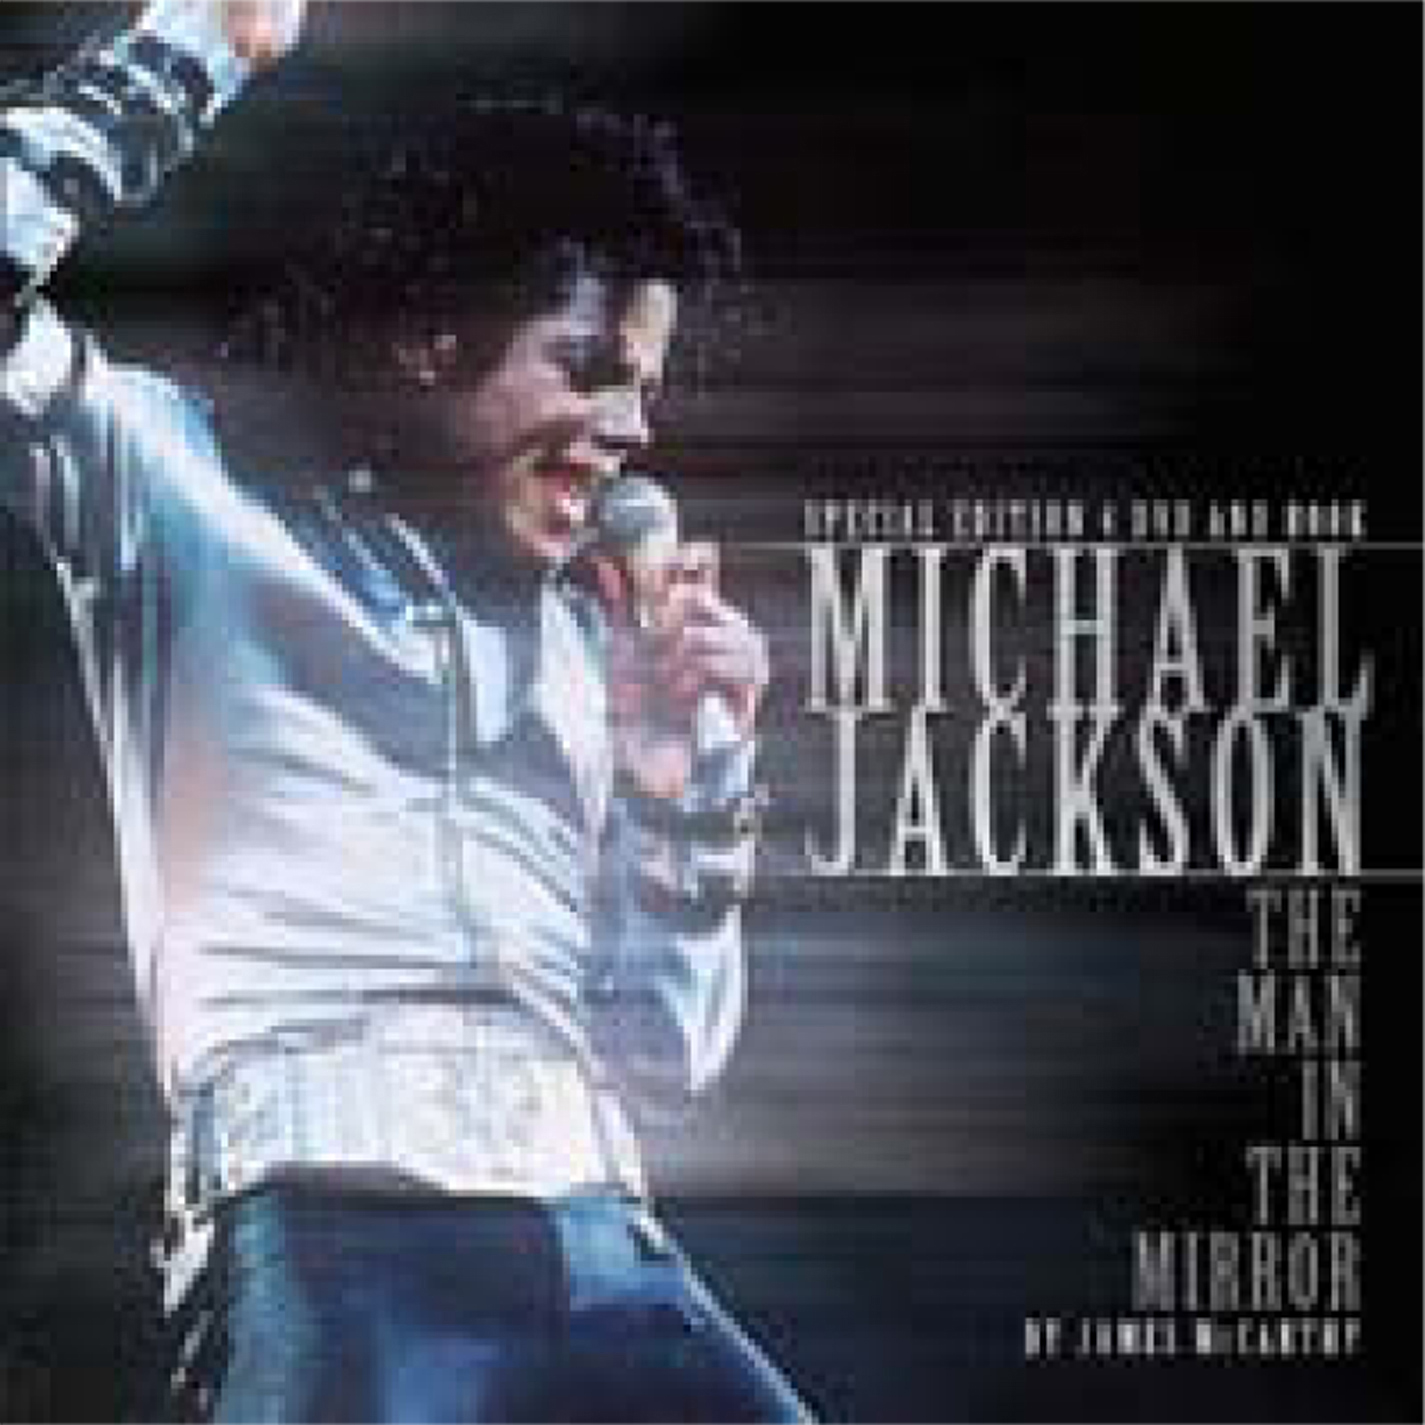 Michael Jackson: The Man in the Mirror